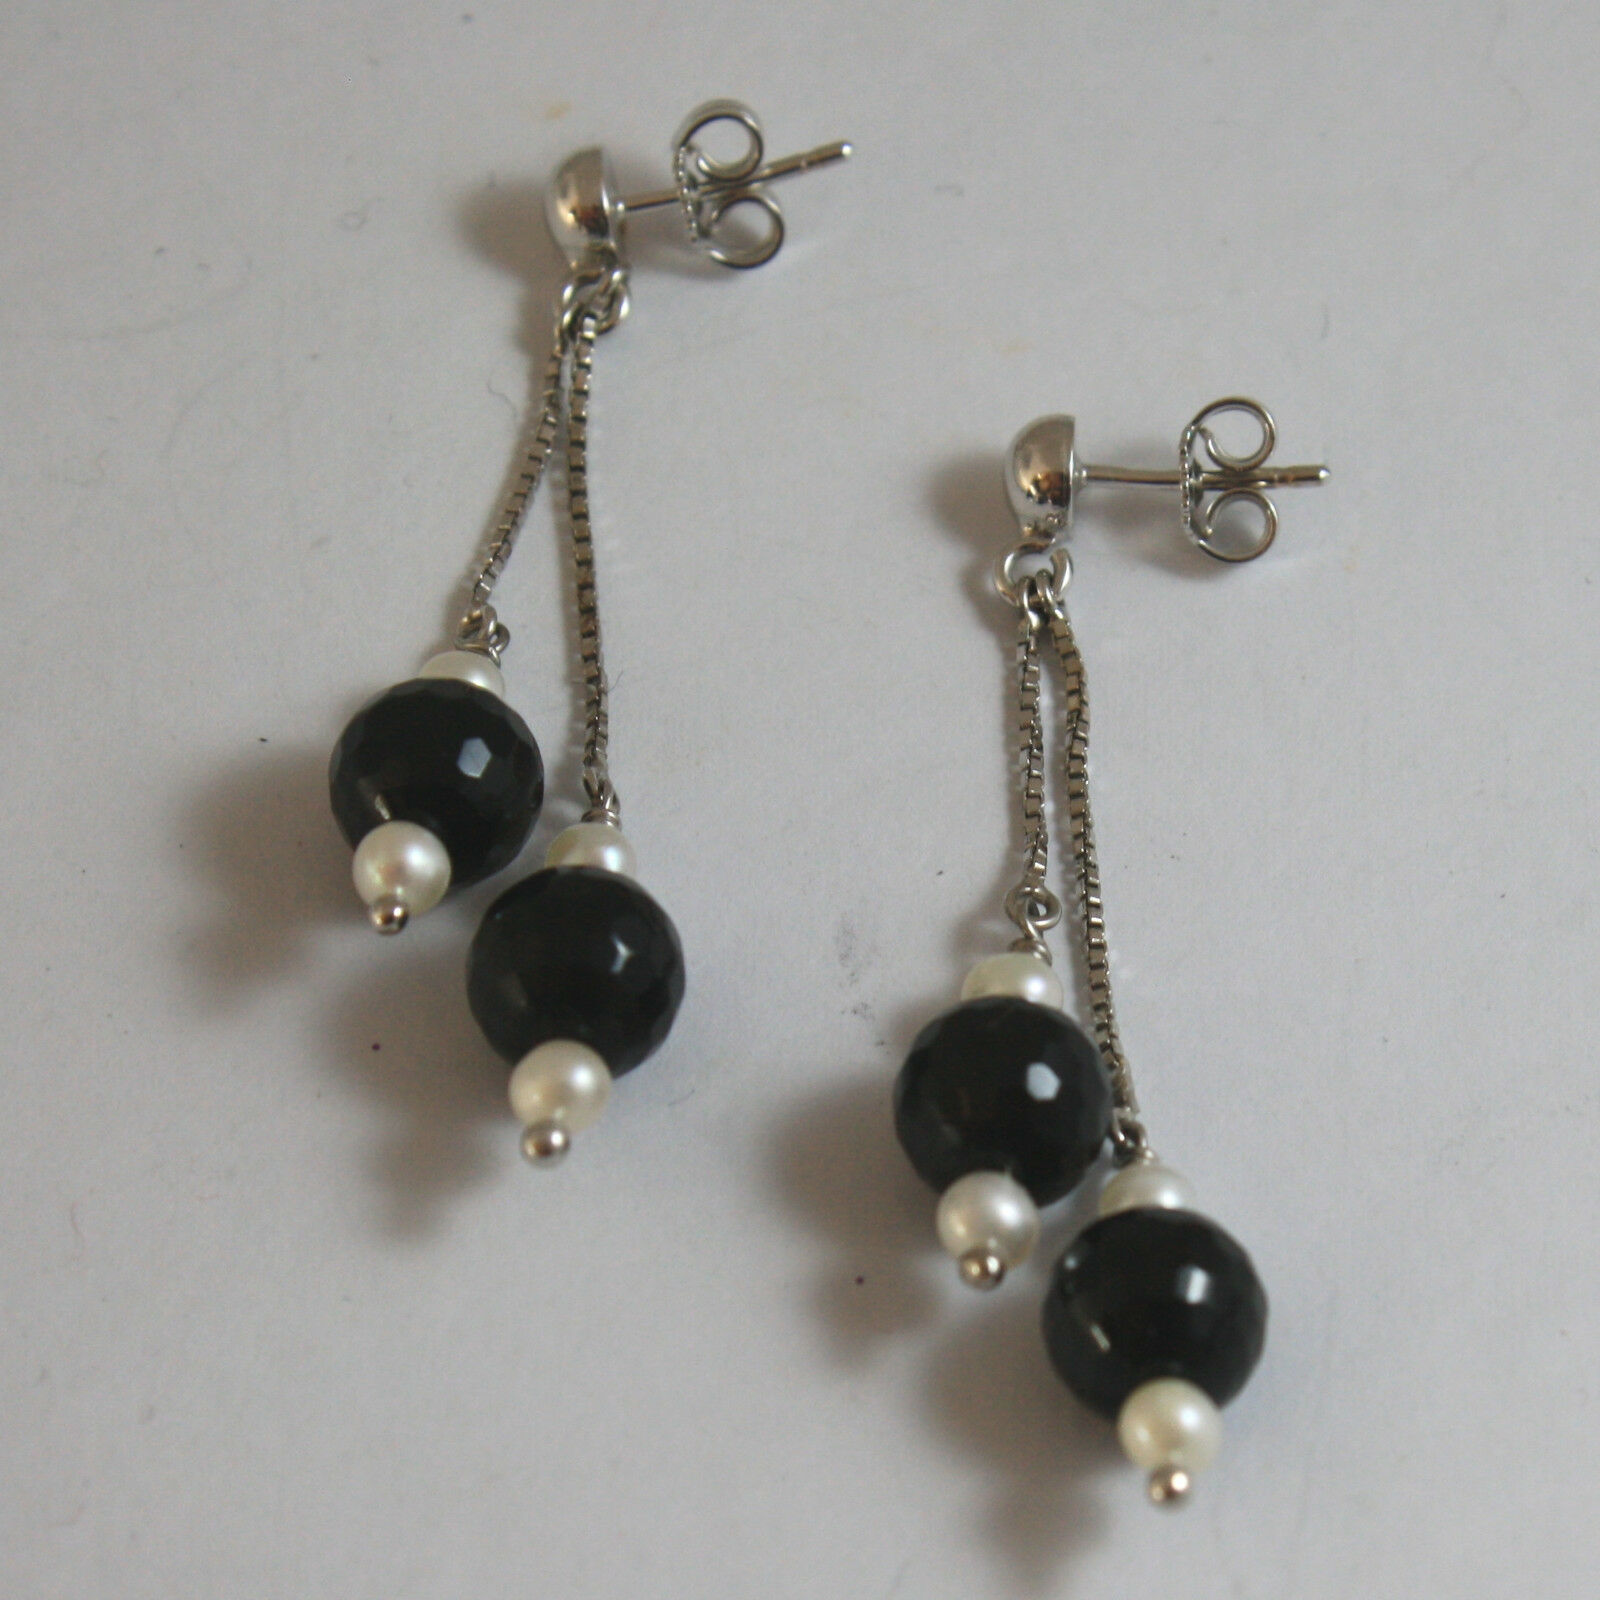 SOLID 18K WHITE GOLD EARRINGS, WITH WHITE PEARL AND BLACK ONYX, LENGTH 2.17 INCH